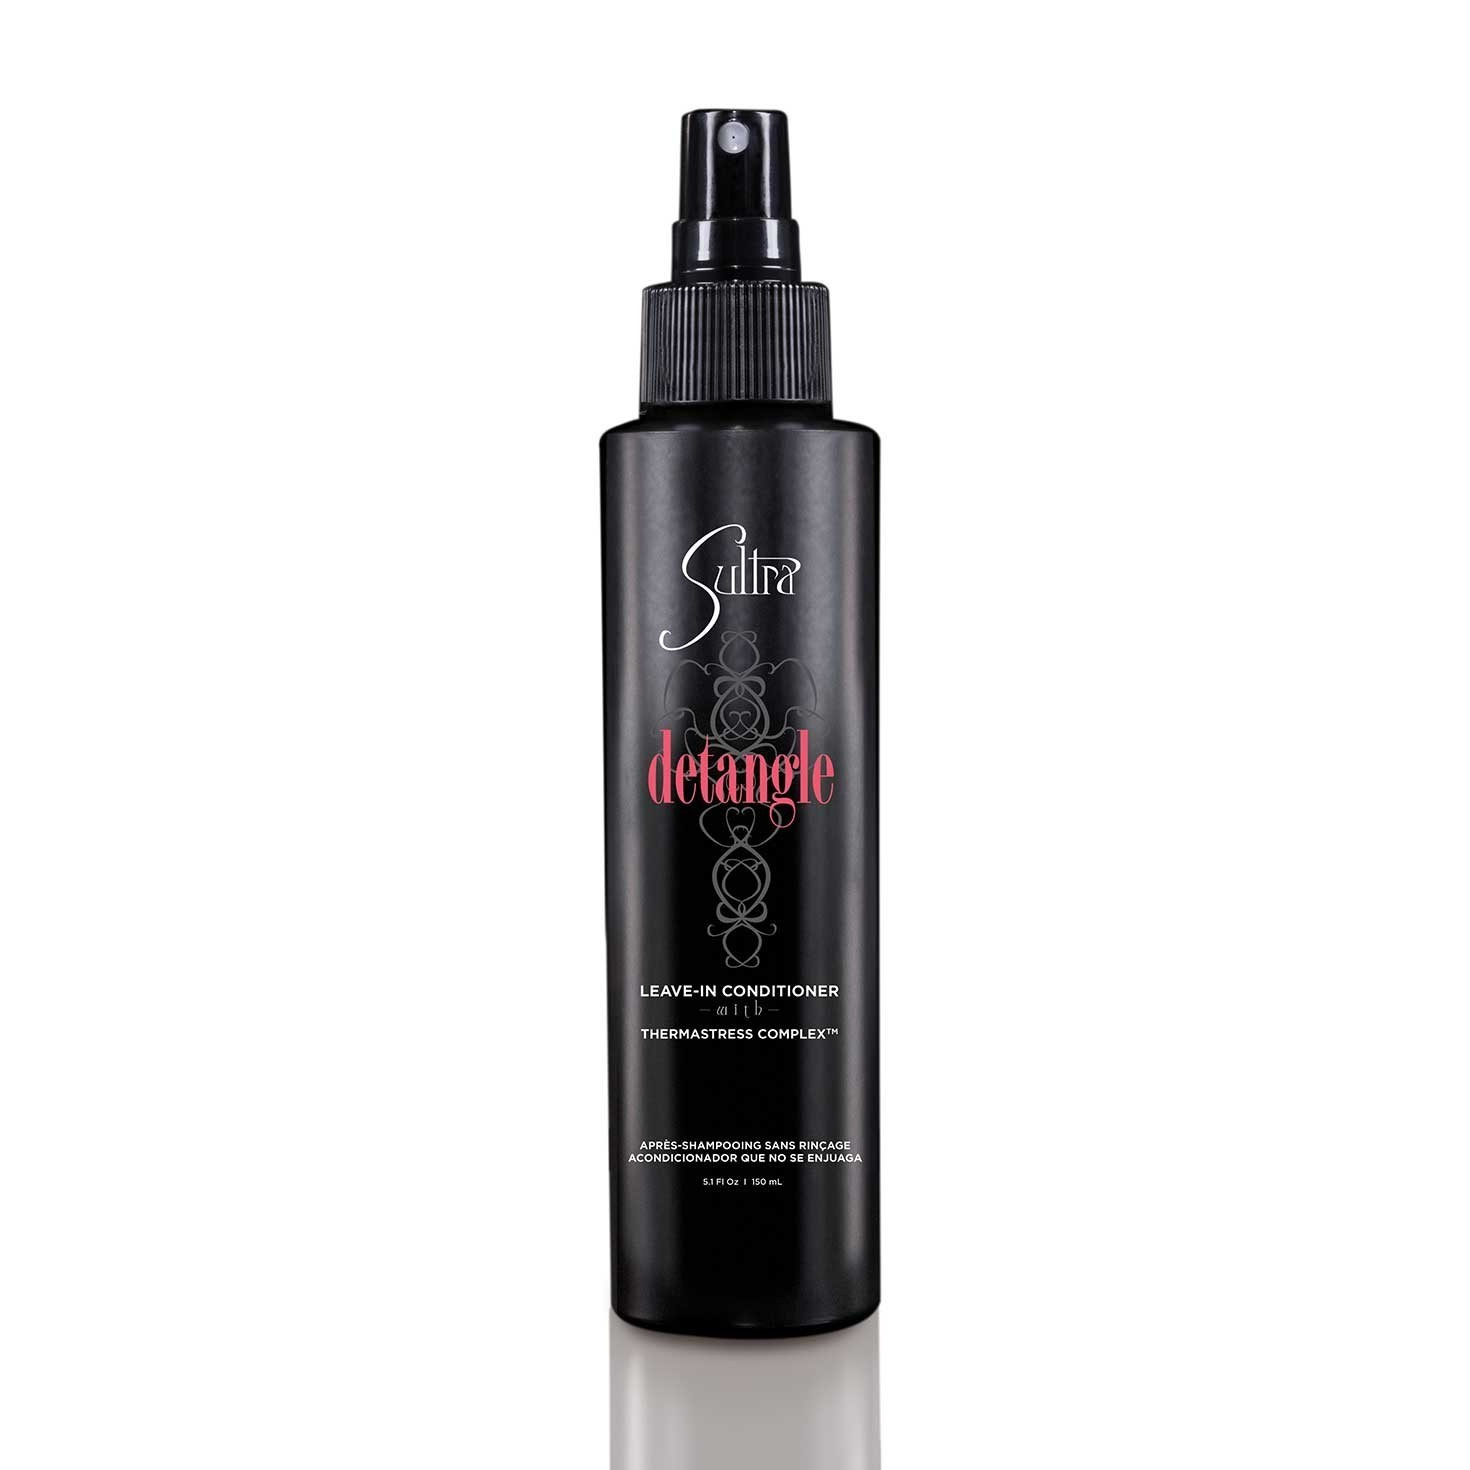 Sultra Detangle Leave-In Conditioner